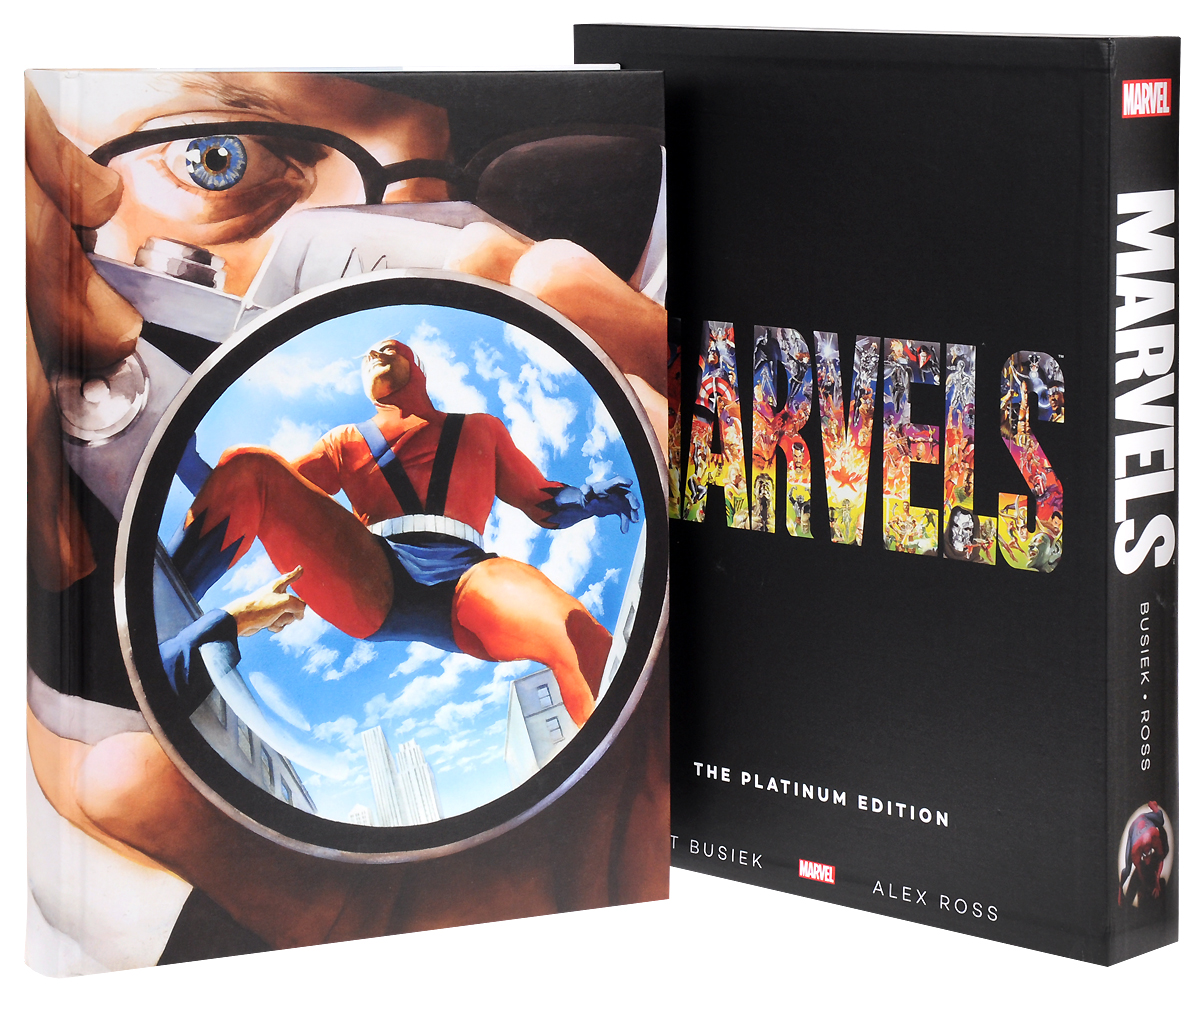 Marvels: The Platinum Edition the salmon who dared to leap higher